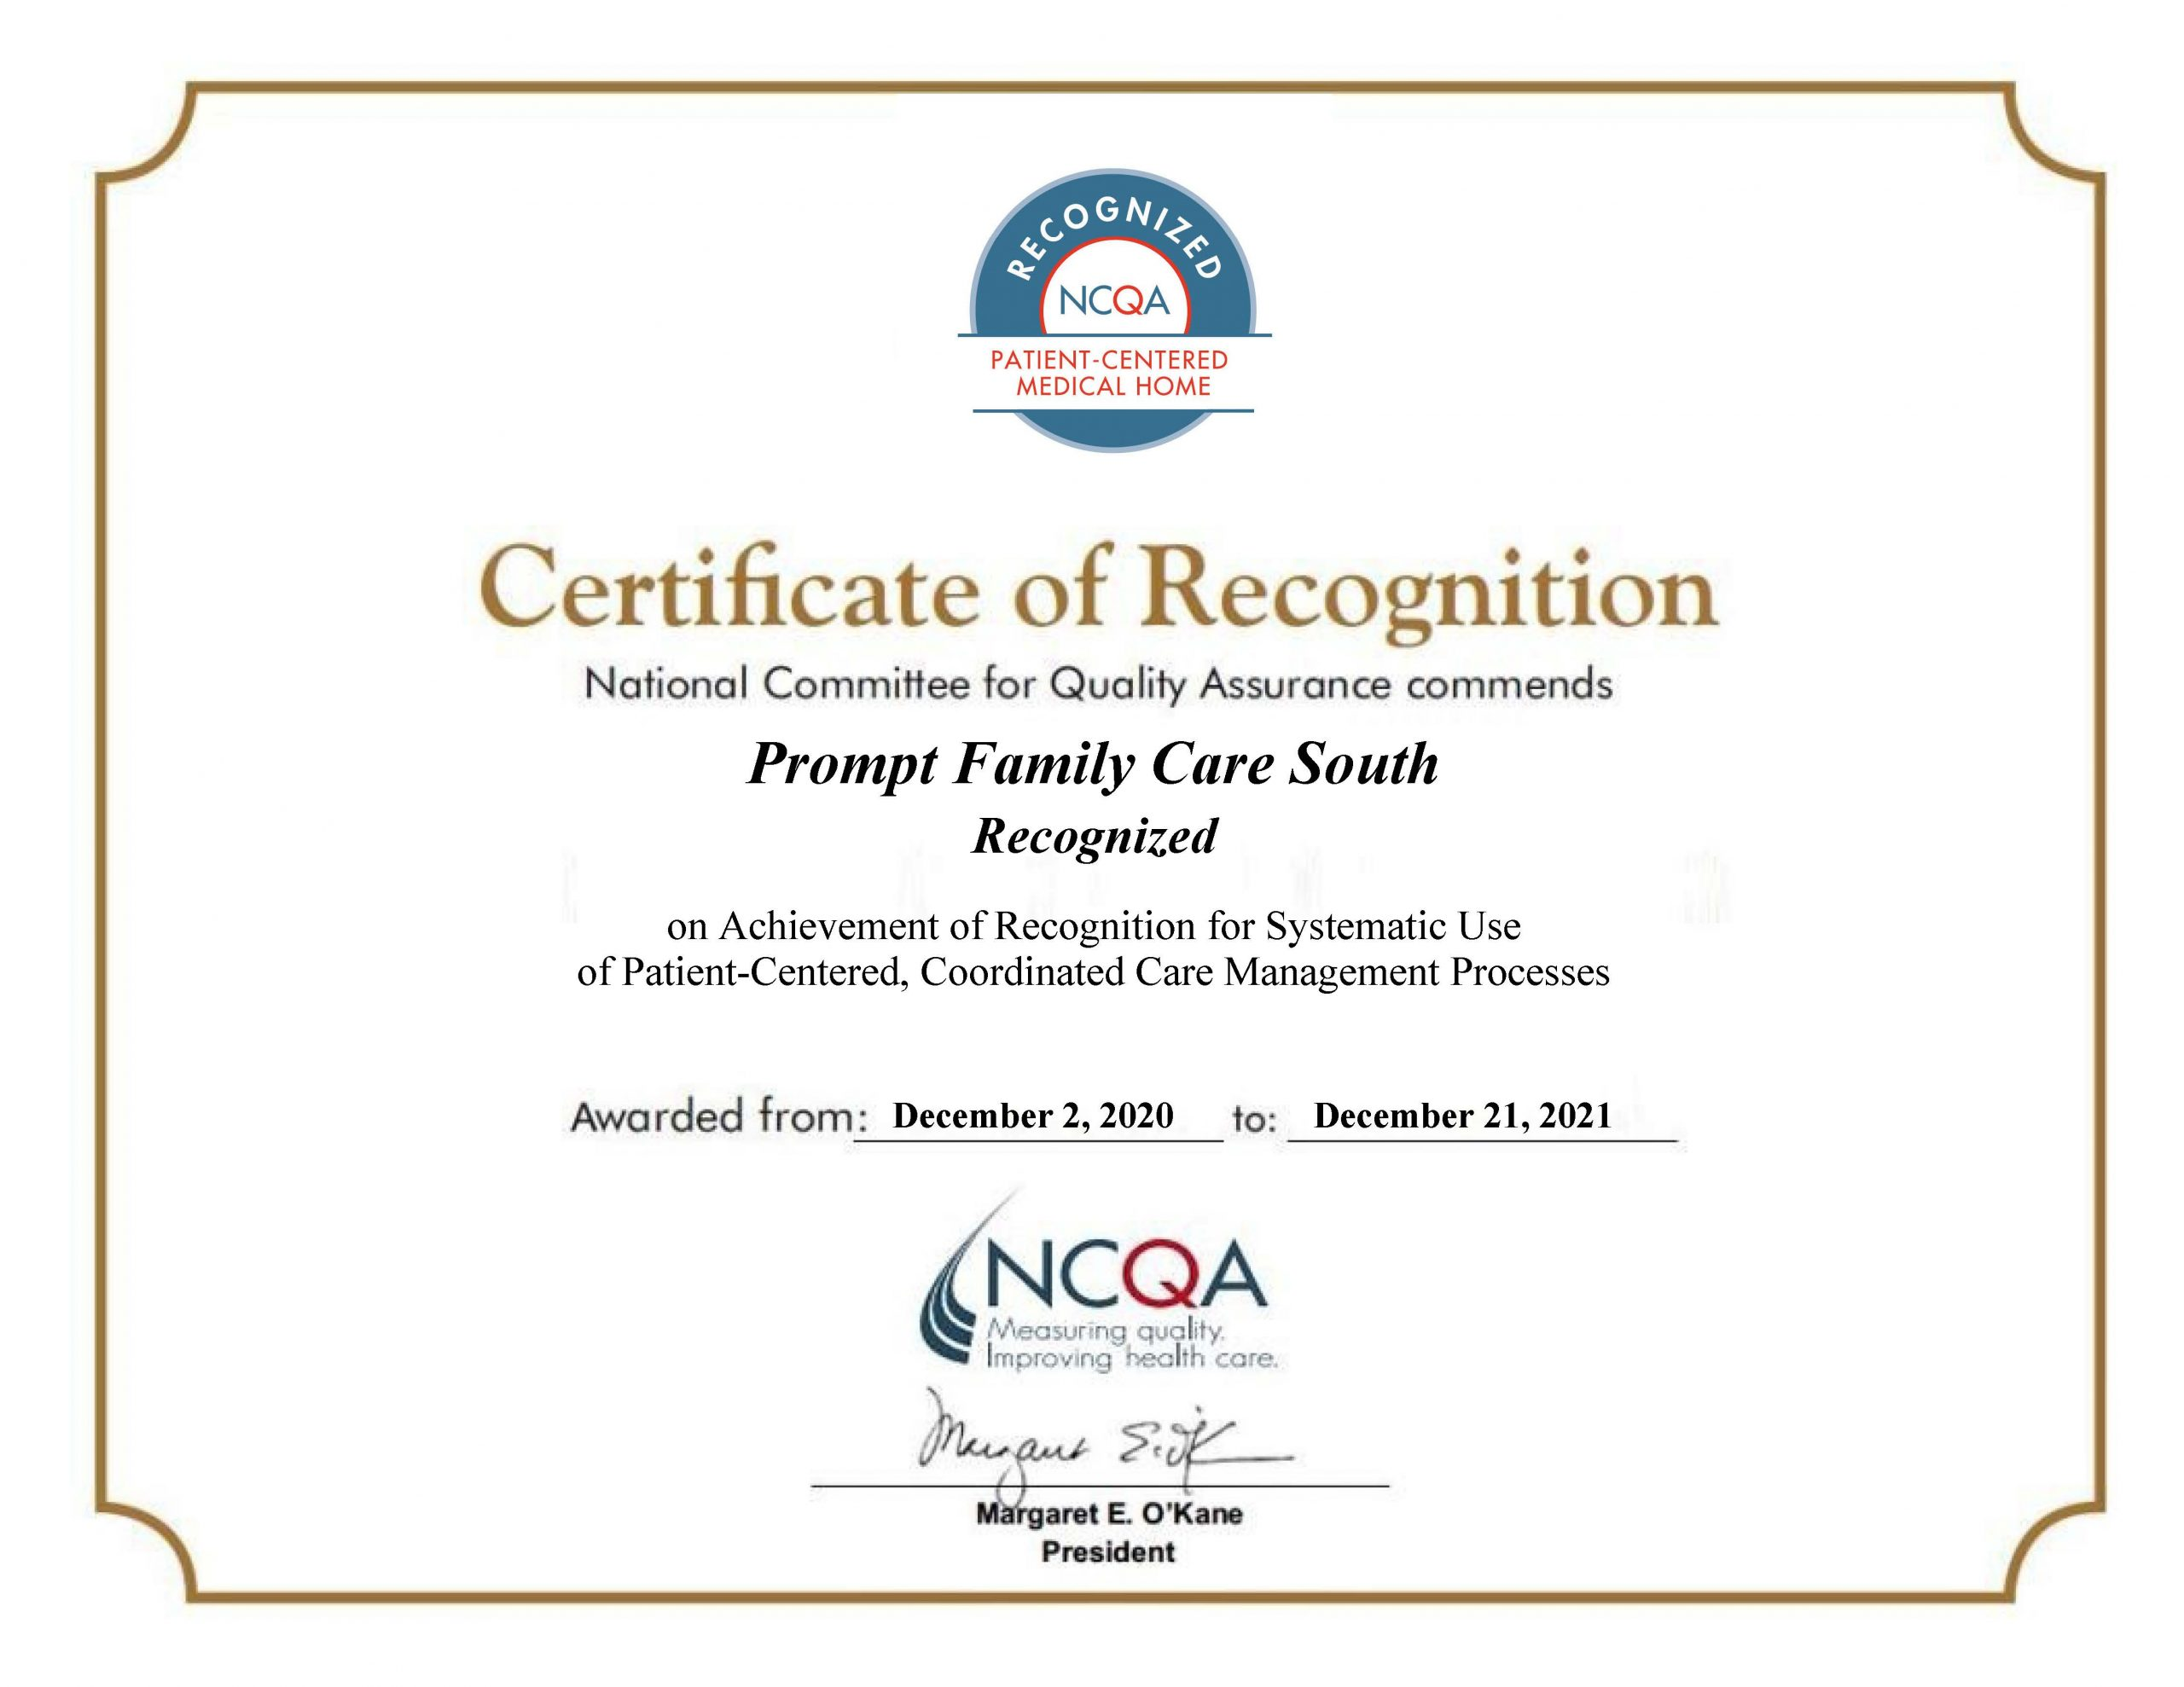 Prompt Family Care Recognized as PCMH